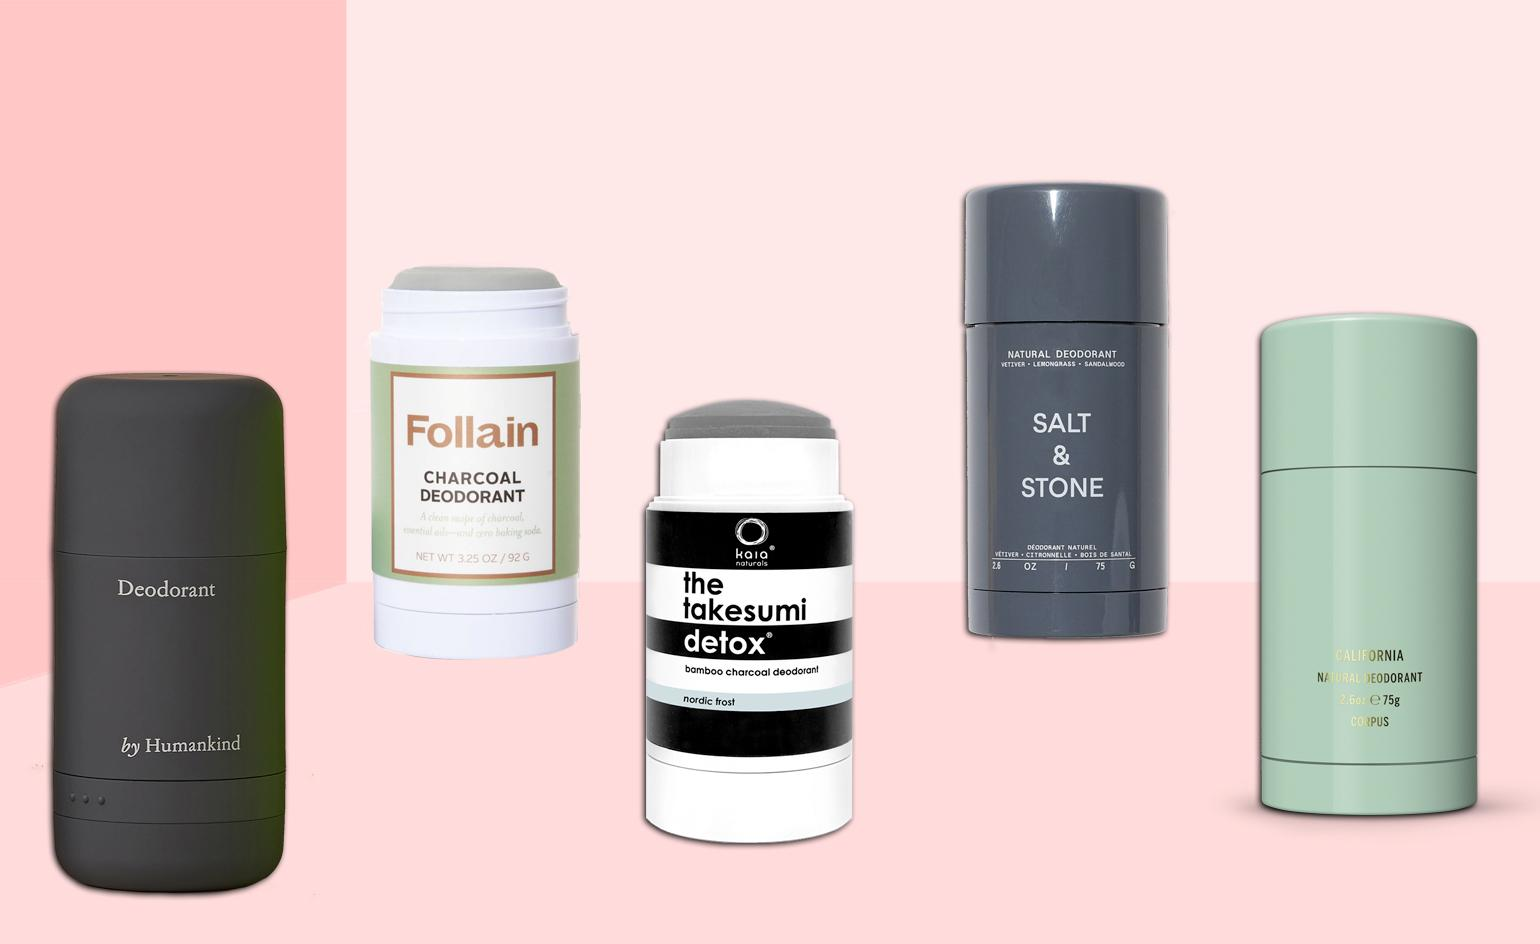 Don't sweat it: natural deoderants with cool packaging